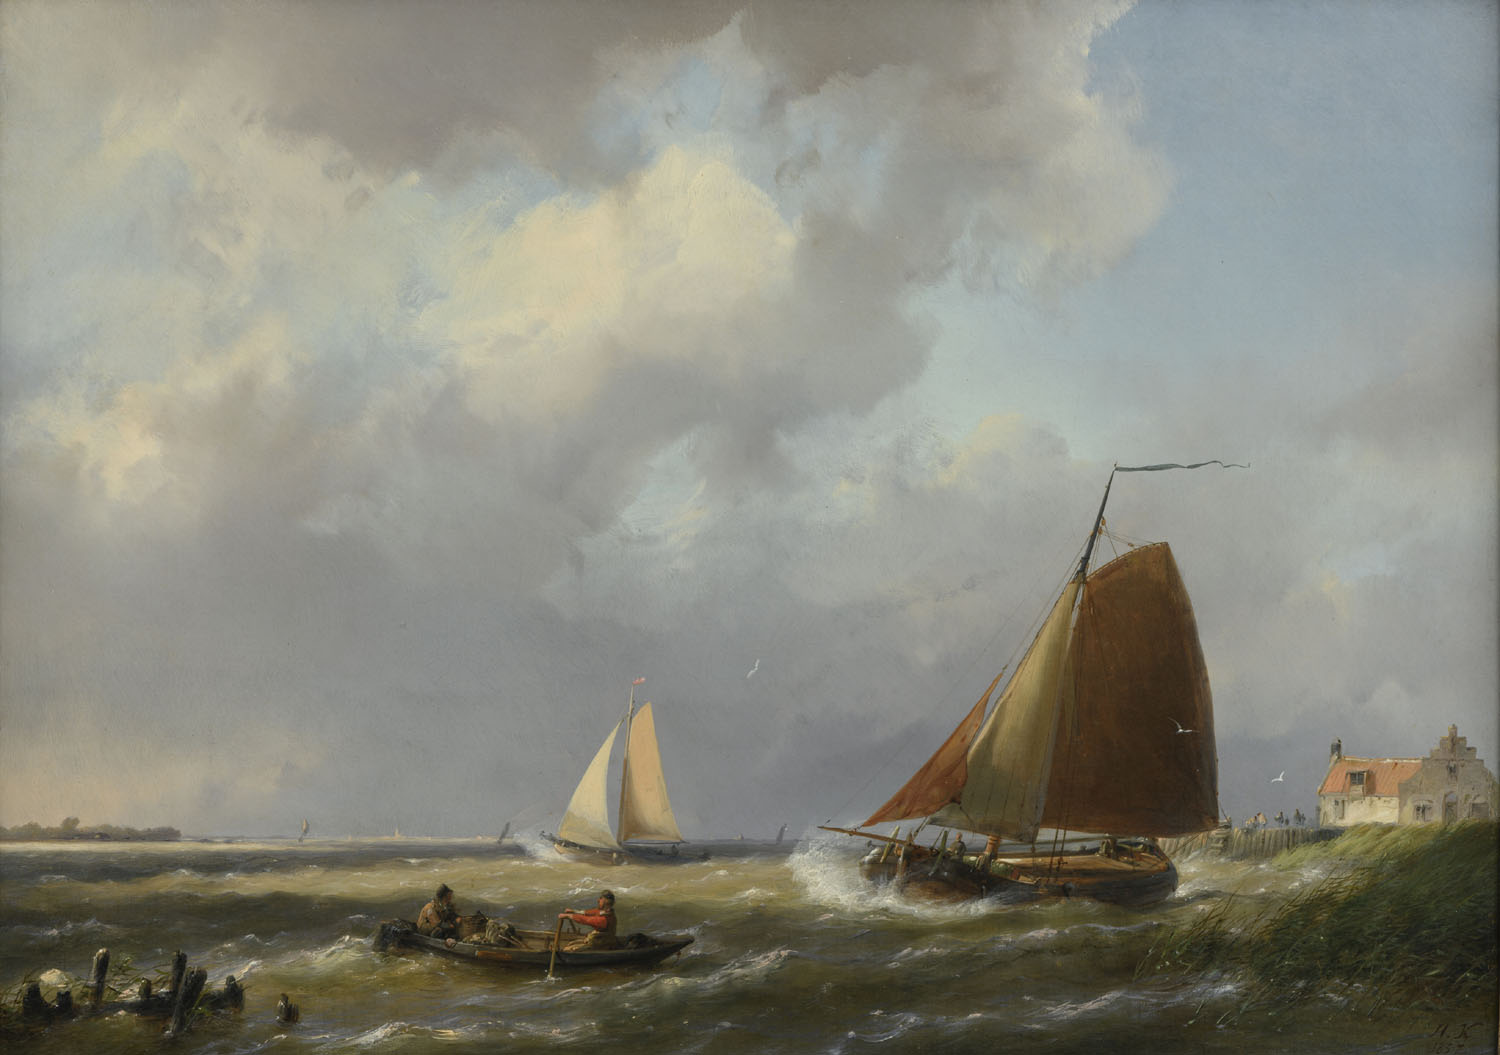 Hermanus Koekkoek | Shipping off the coast | Kunsthandel Bies | Bies Gallery